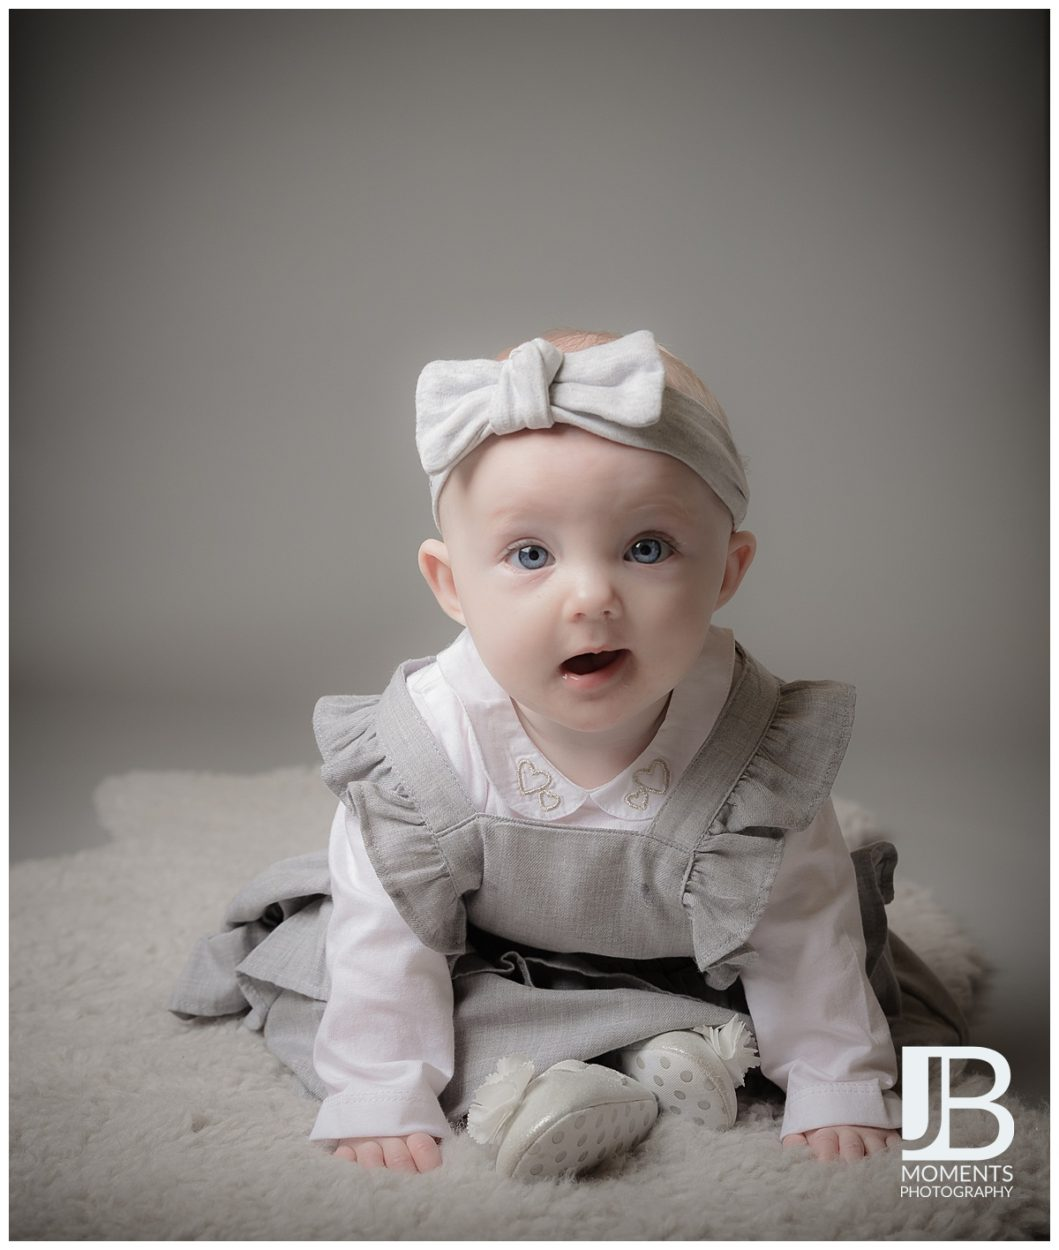 Toddler Photography - JB Moments Photography